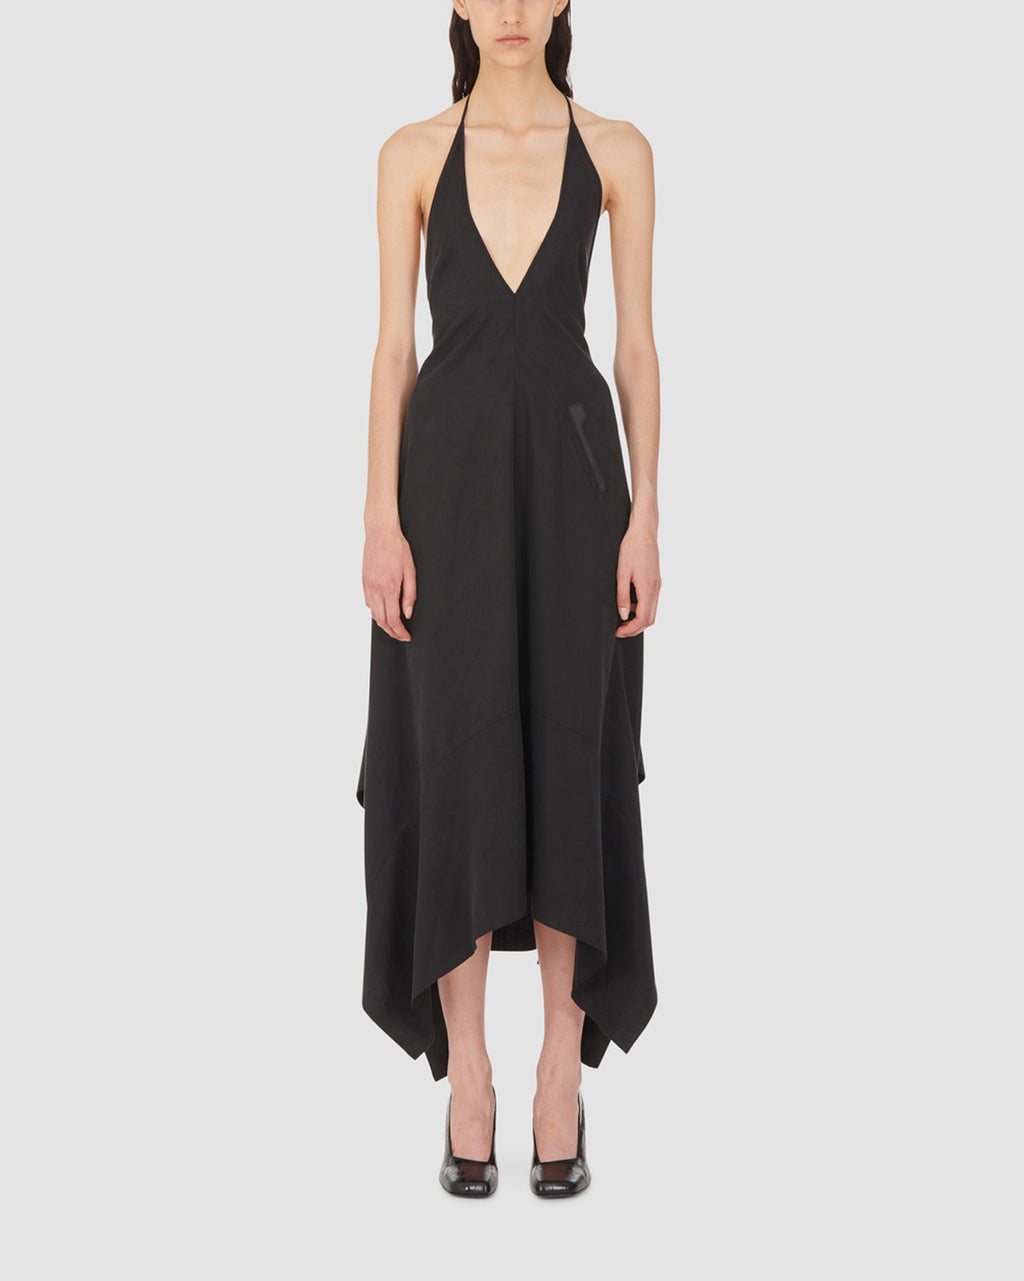 1017 ALYX 9SM | VULCANO DRESS | Dress | BLACK, Dresses, Google Shopping, S20, SS20, Woman, WOMEN